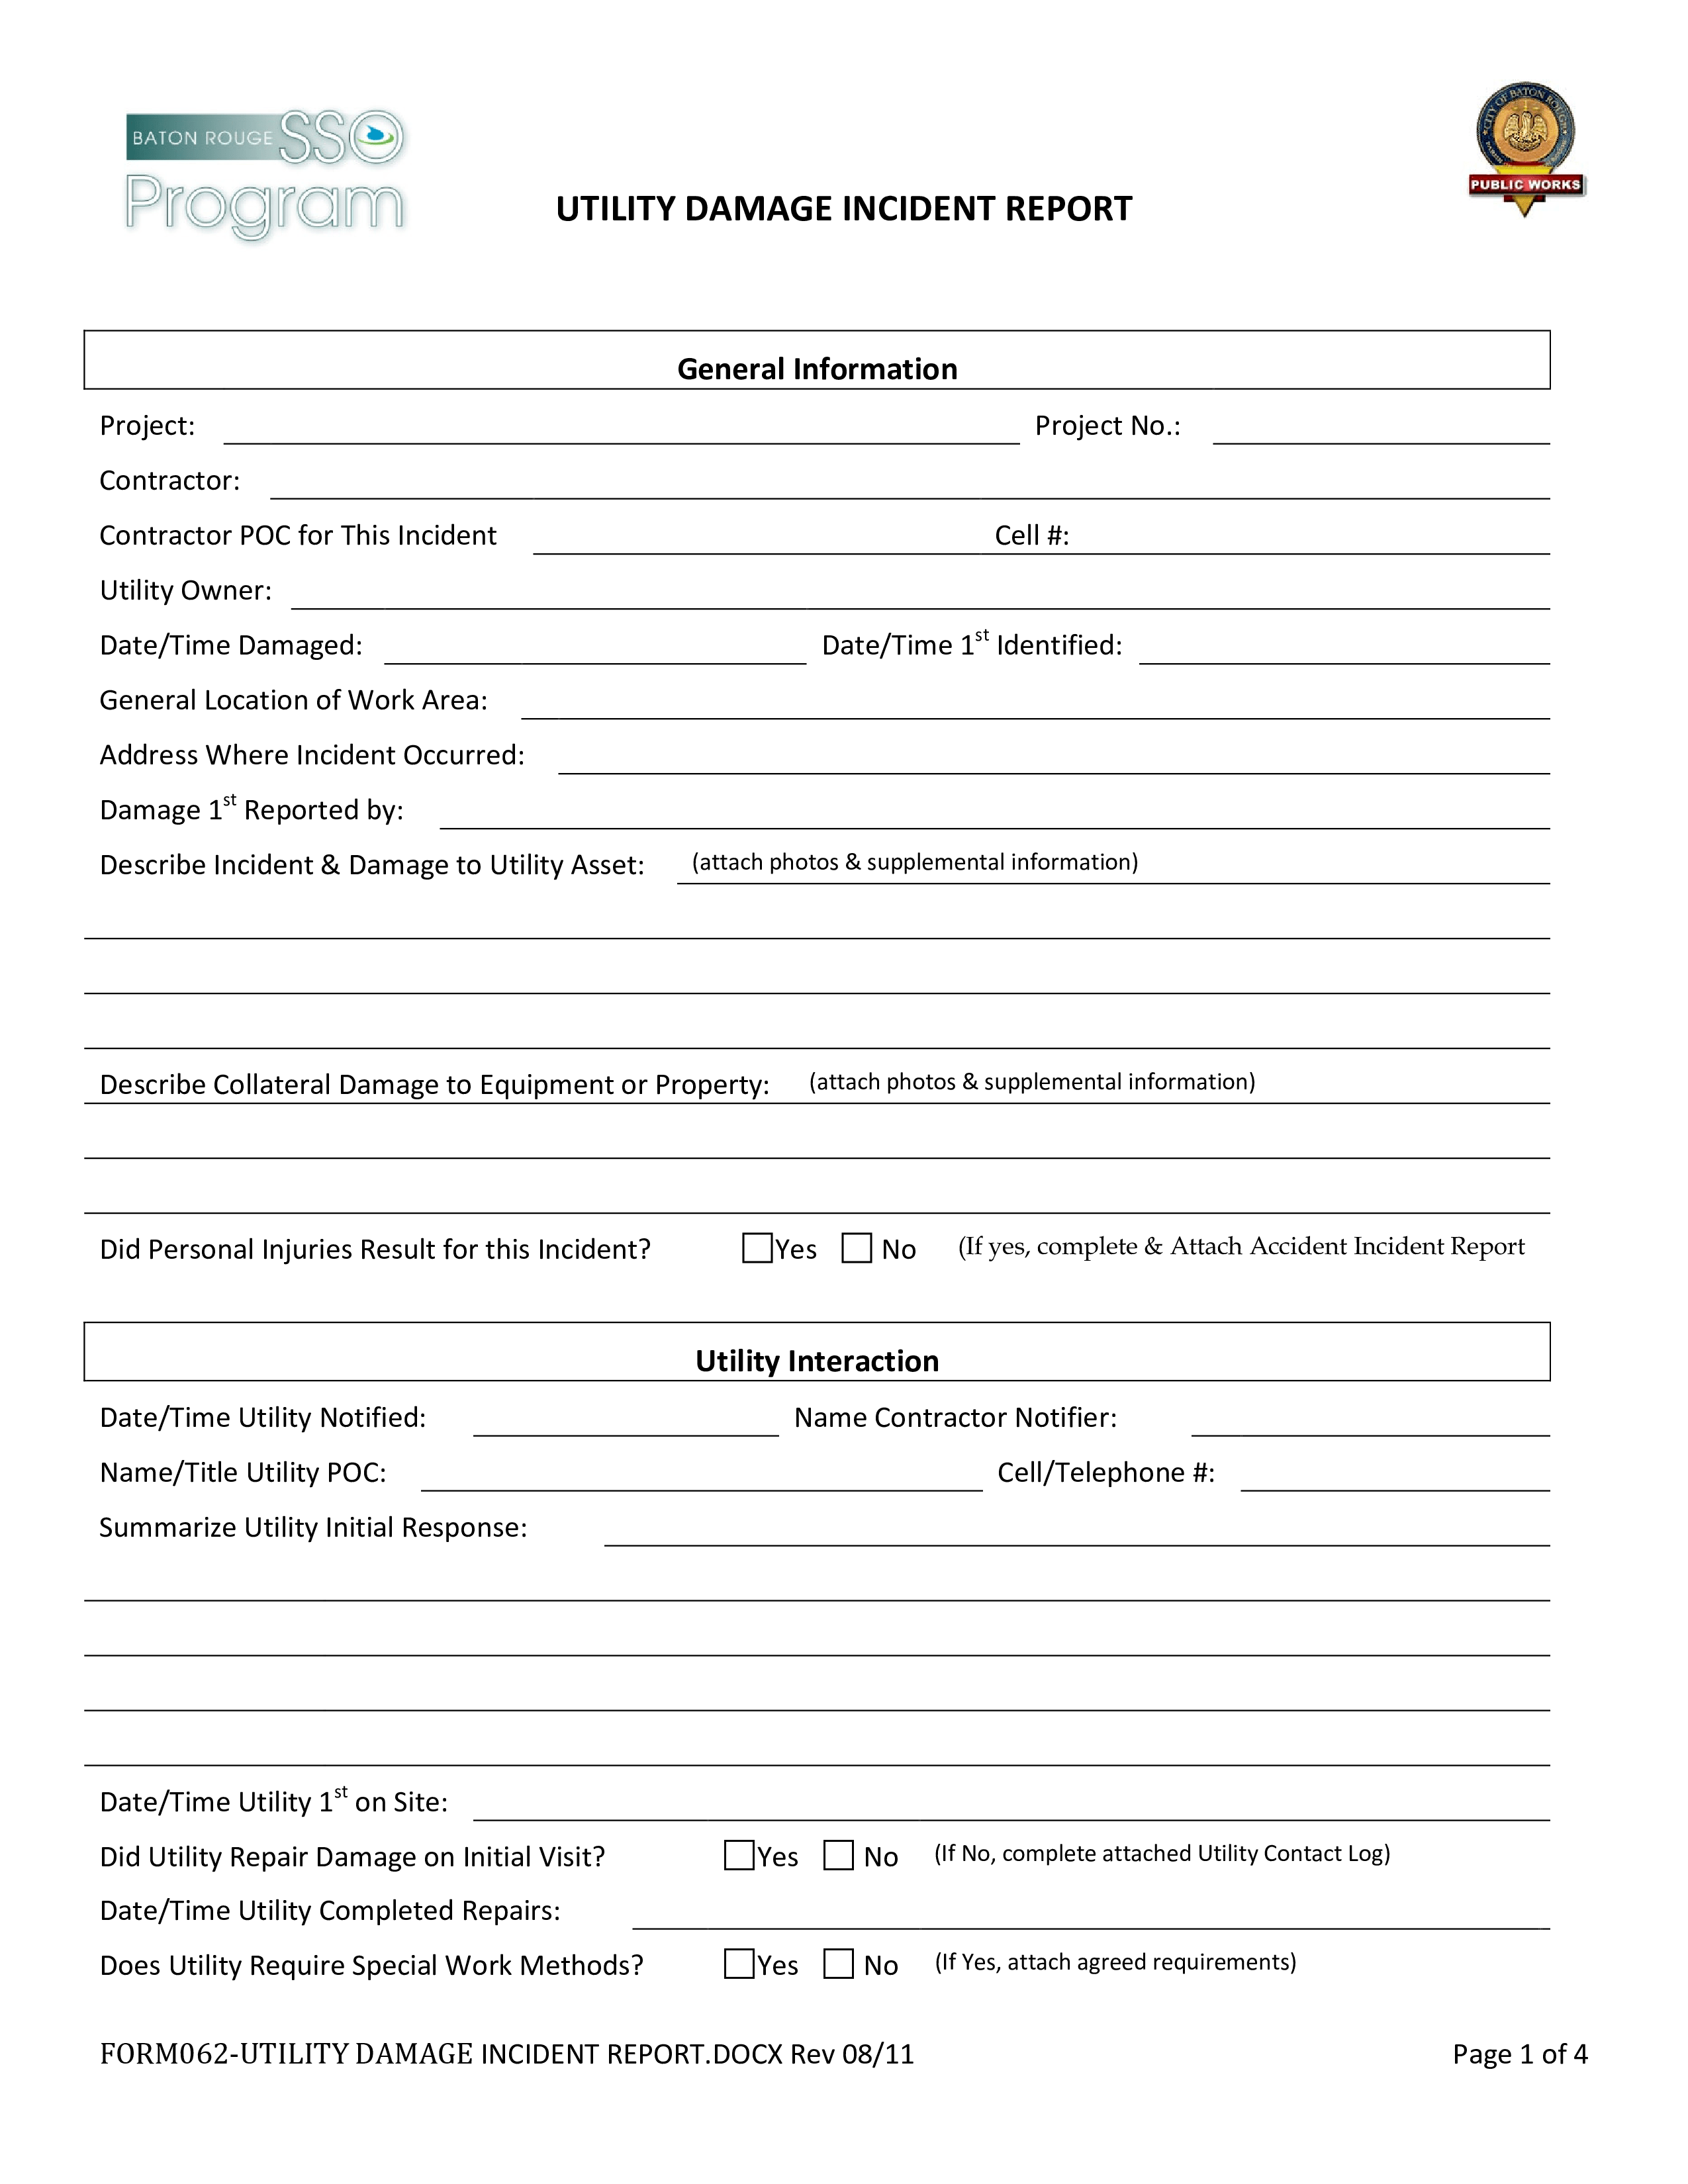 Utility Damage Incident Report Form